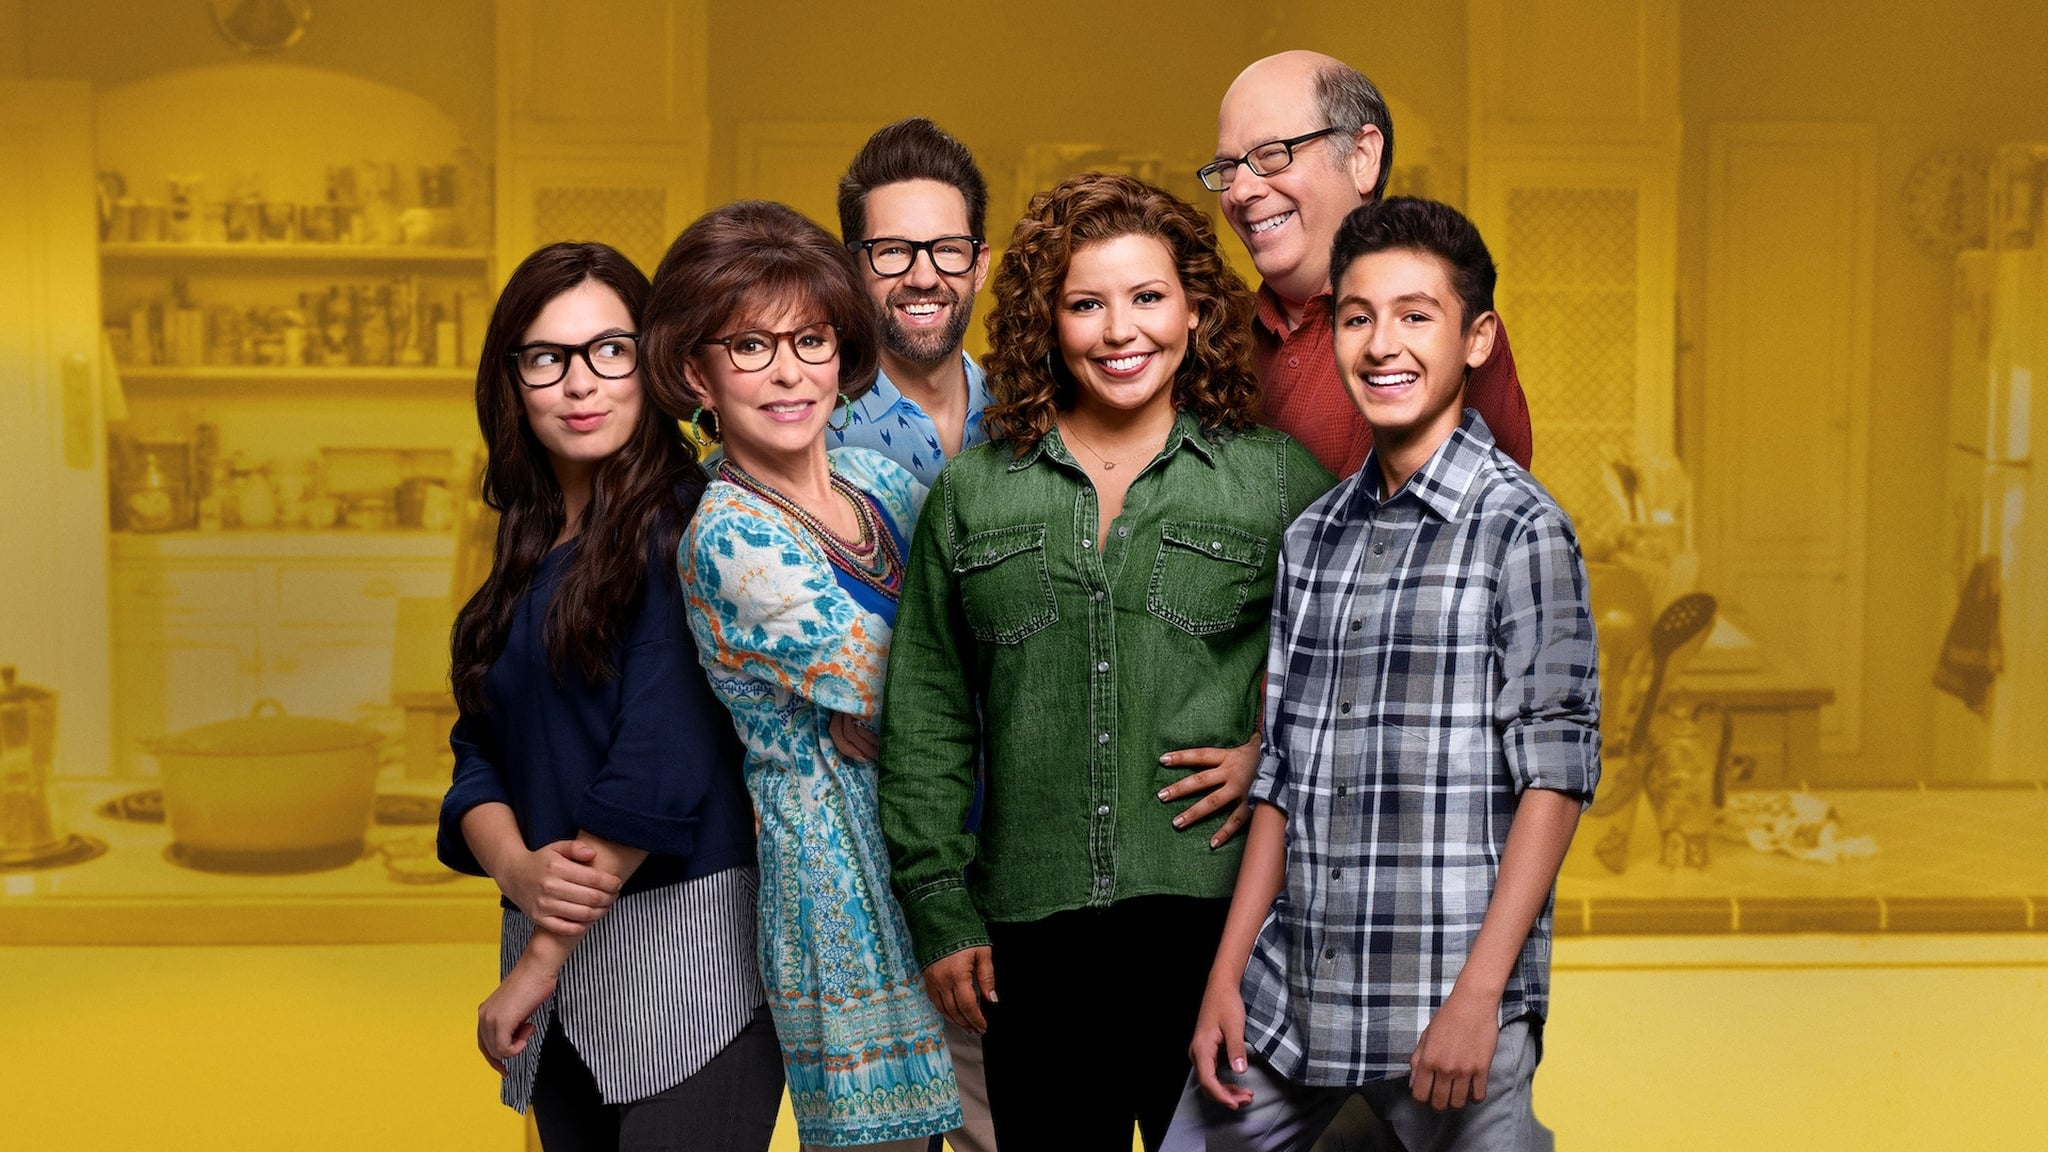 Pop TV cancels One Day at a Time